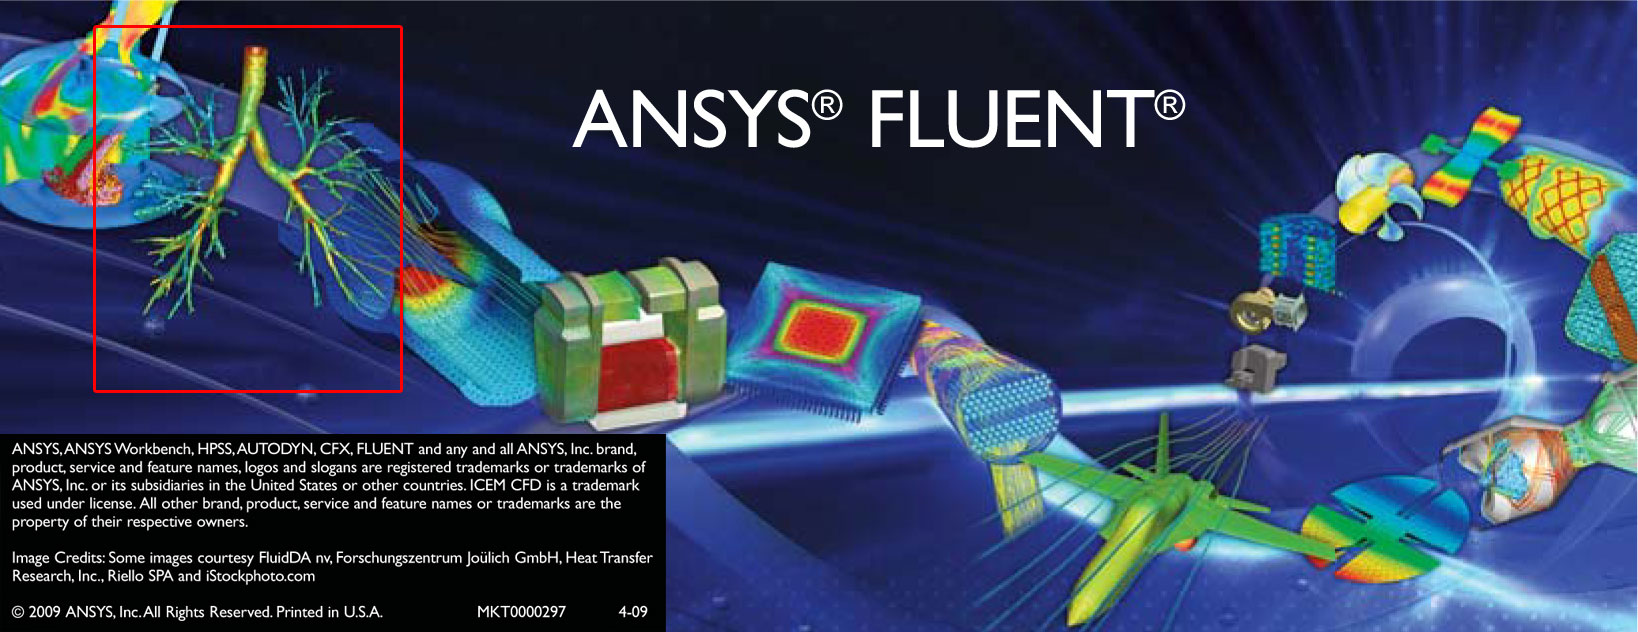 http://s5.picofile.com/file/8106421642/Ansys_cover_image.jpg